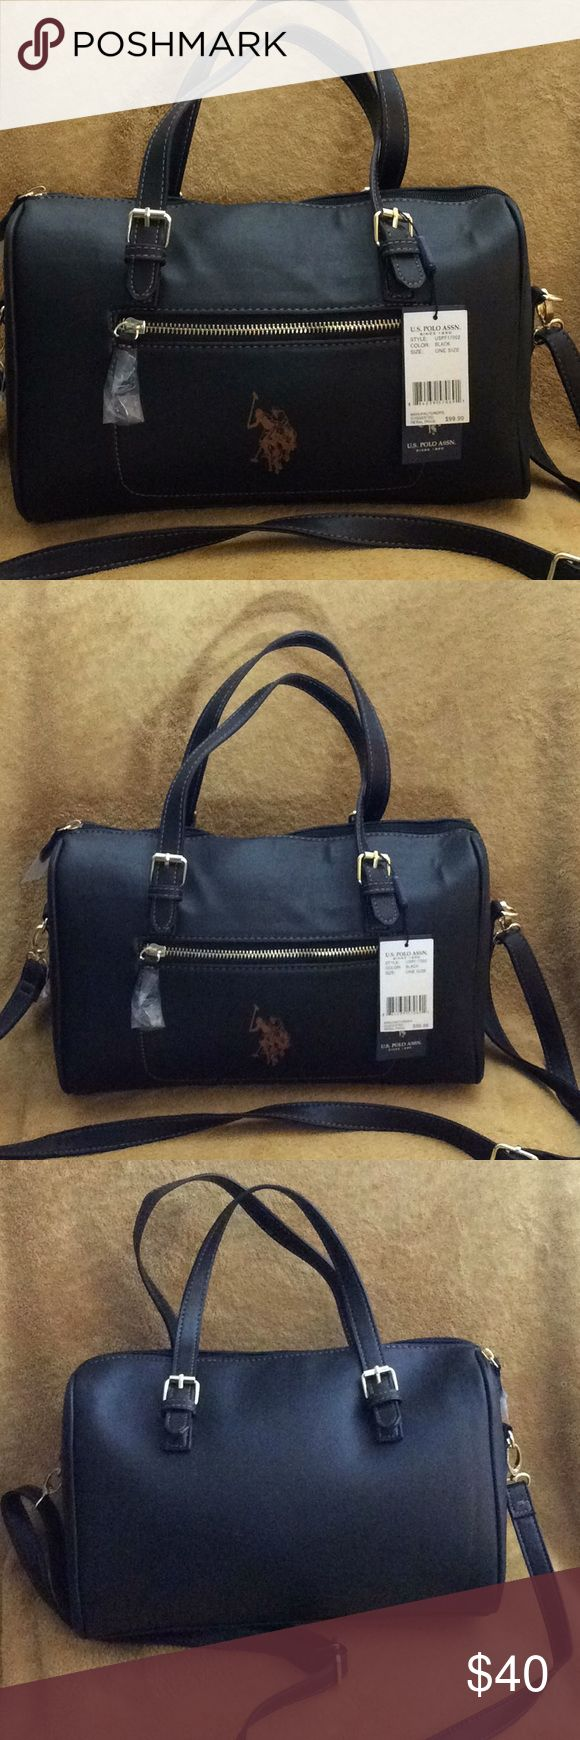 US POLO ASSN BLACK HANDBAG WITH GOLD ZIPPER NWT US POLO ASSN BLACK HANDBAG WITH GOLD ZIPPER. New with tag no stains or cuts. It is as you see in the pictures US POLO ASSN Bags Satchels